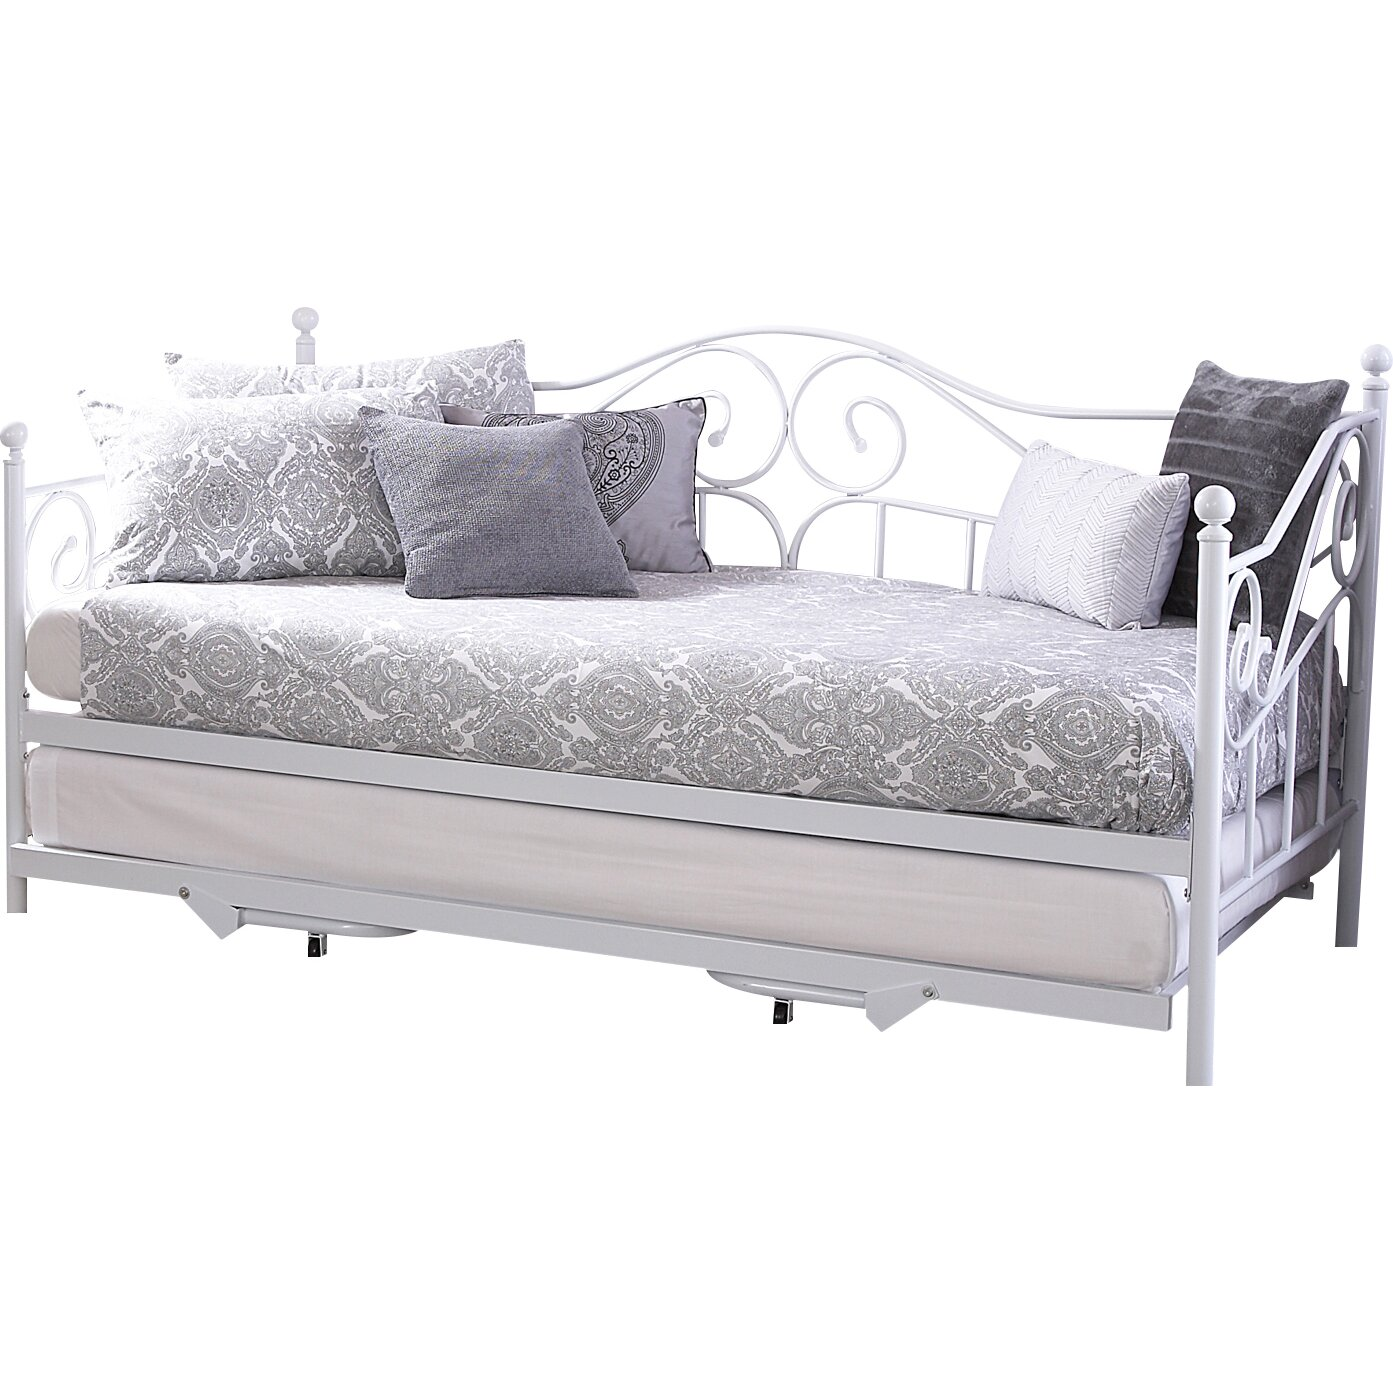 lily manor amberboi daybed with trundle reviews. Black Bedroom Furniture Sets. Home Design Ideas